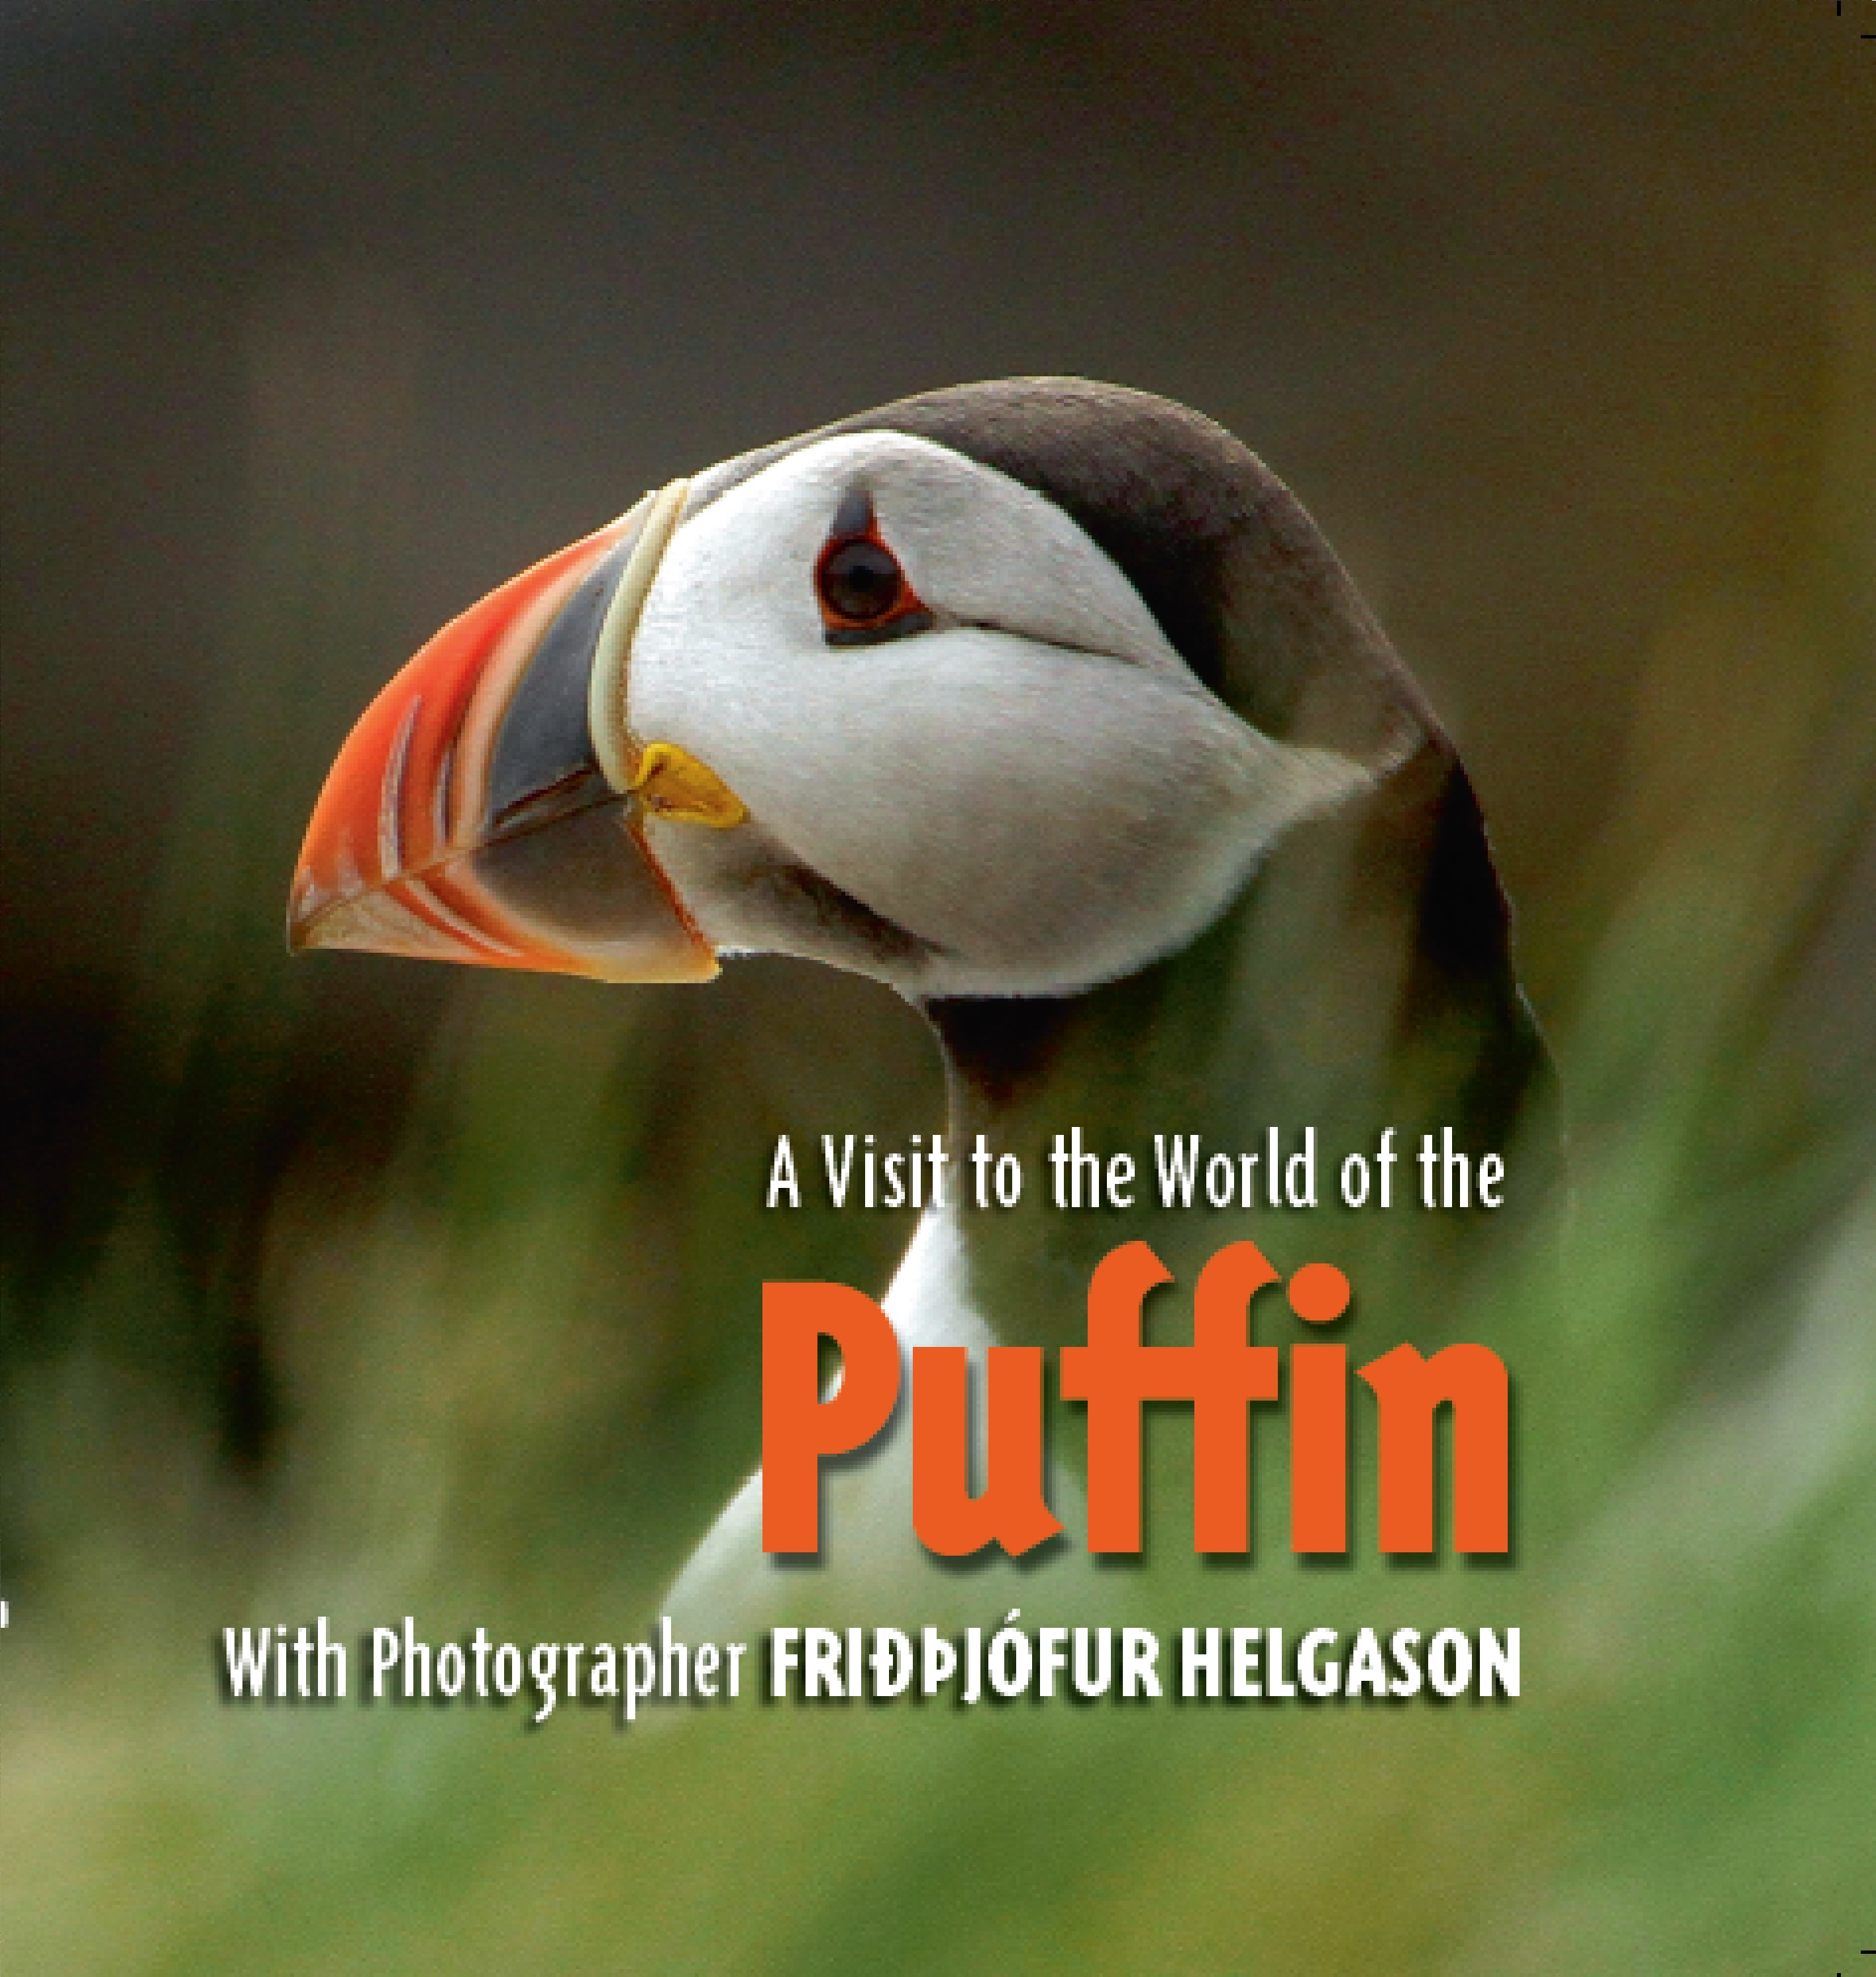 A Visit to the World of the Puffin